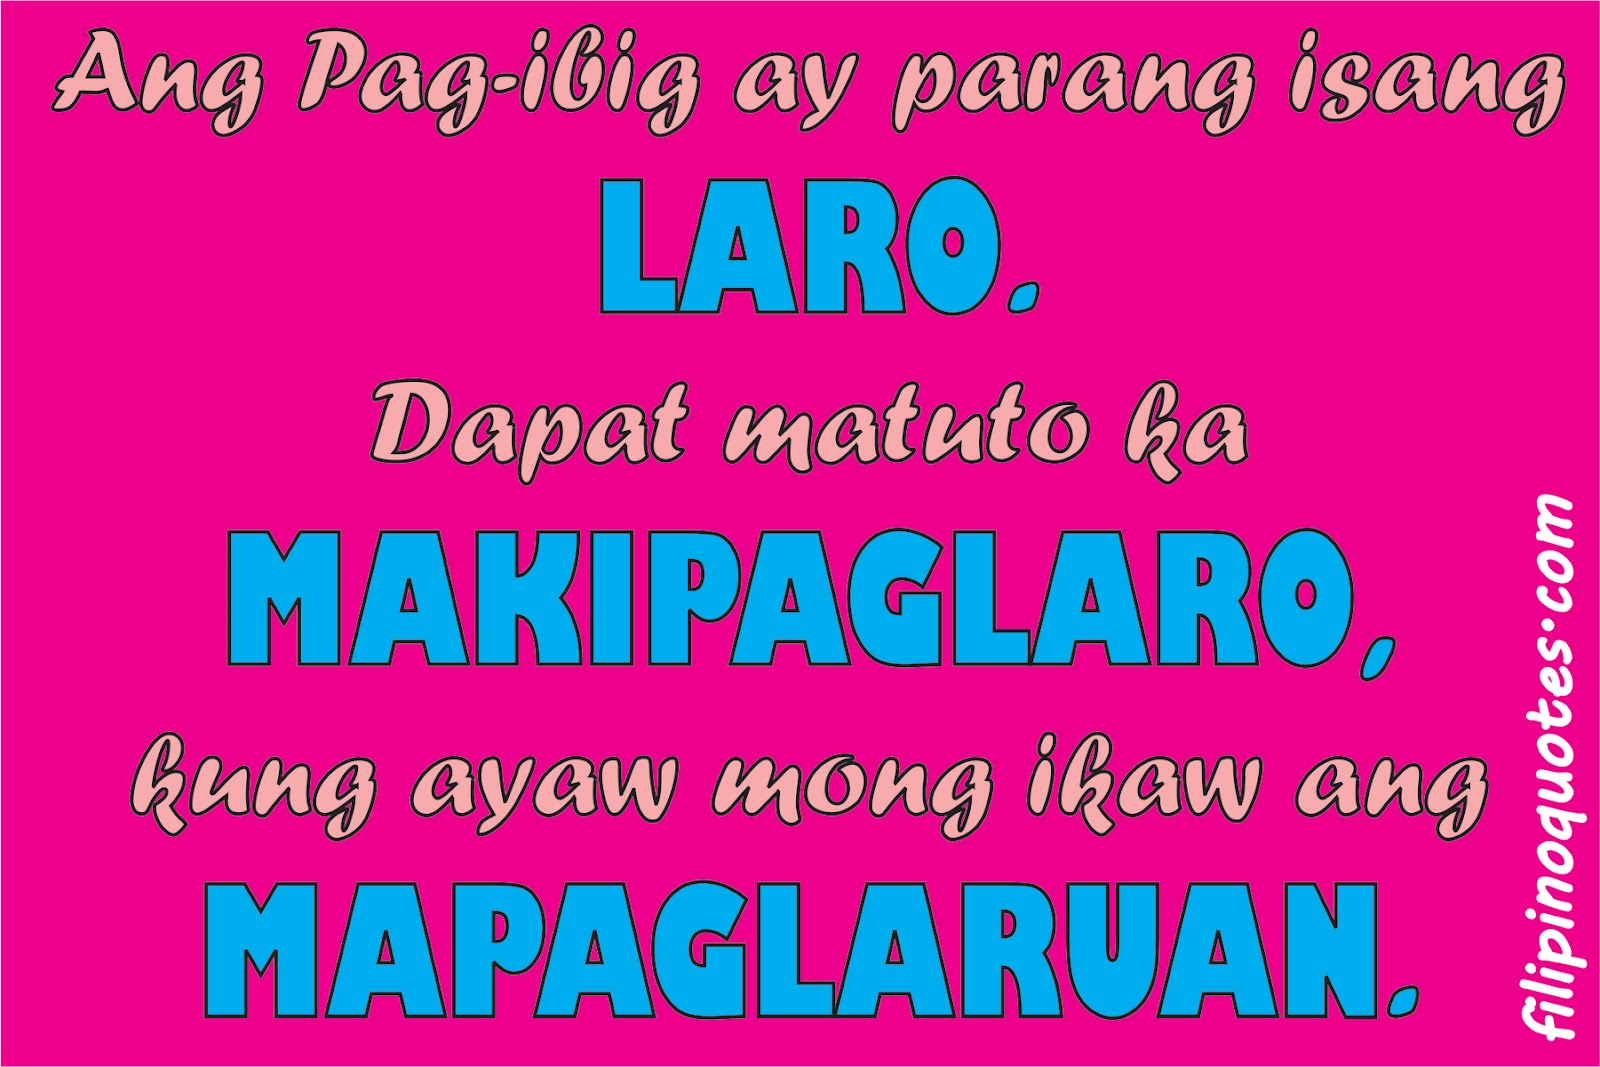 Tagalog Love Quotes (May 2012) - Tagalog Love Quotes